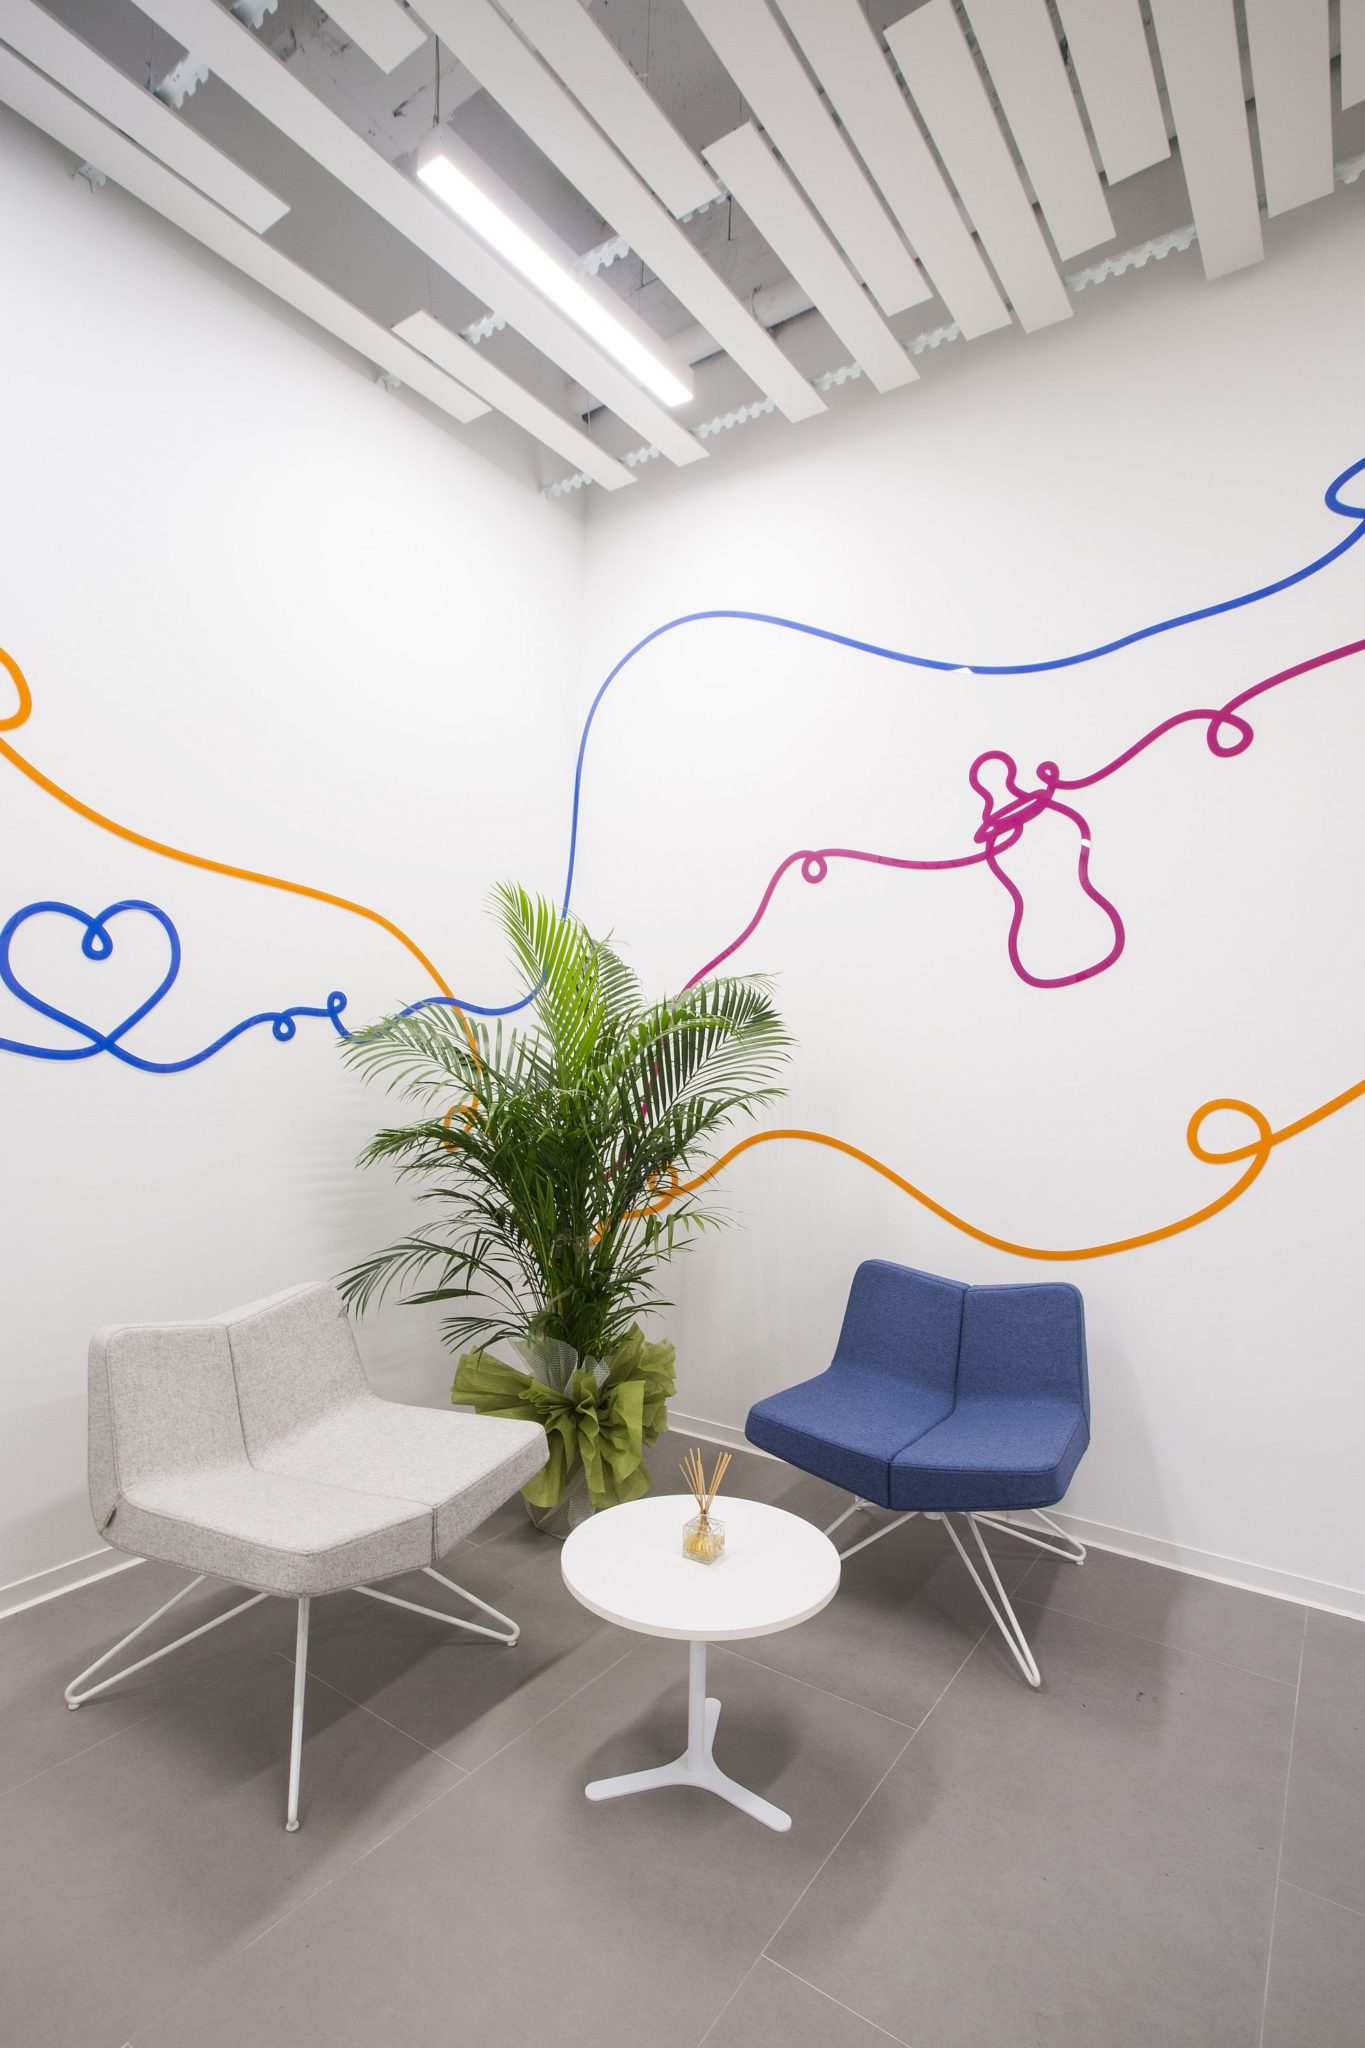 Waiting room in white of the office with a touch of color and whimsical pattern